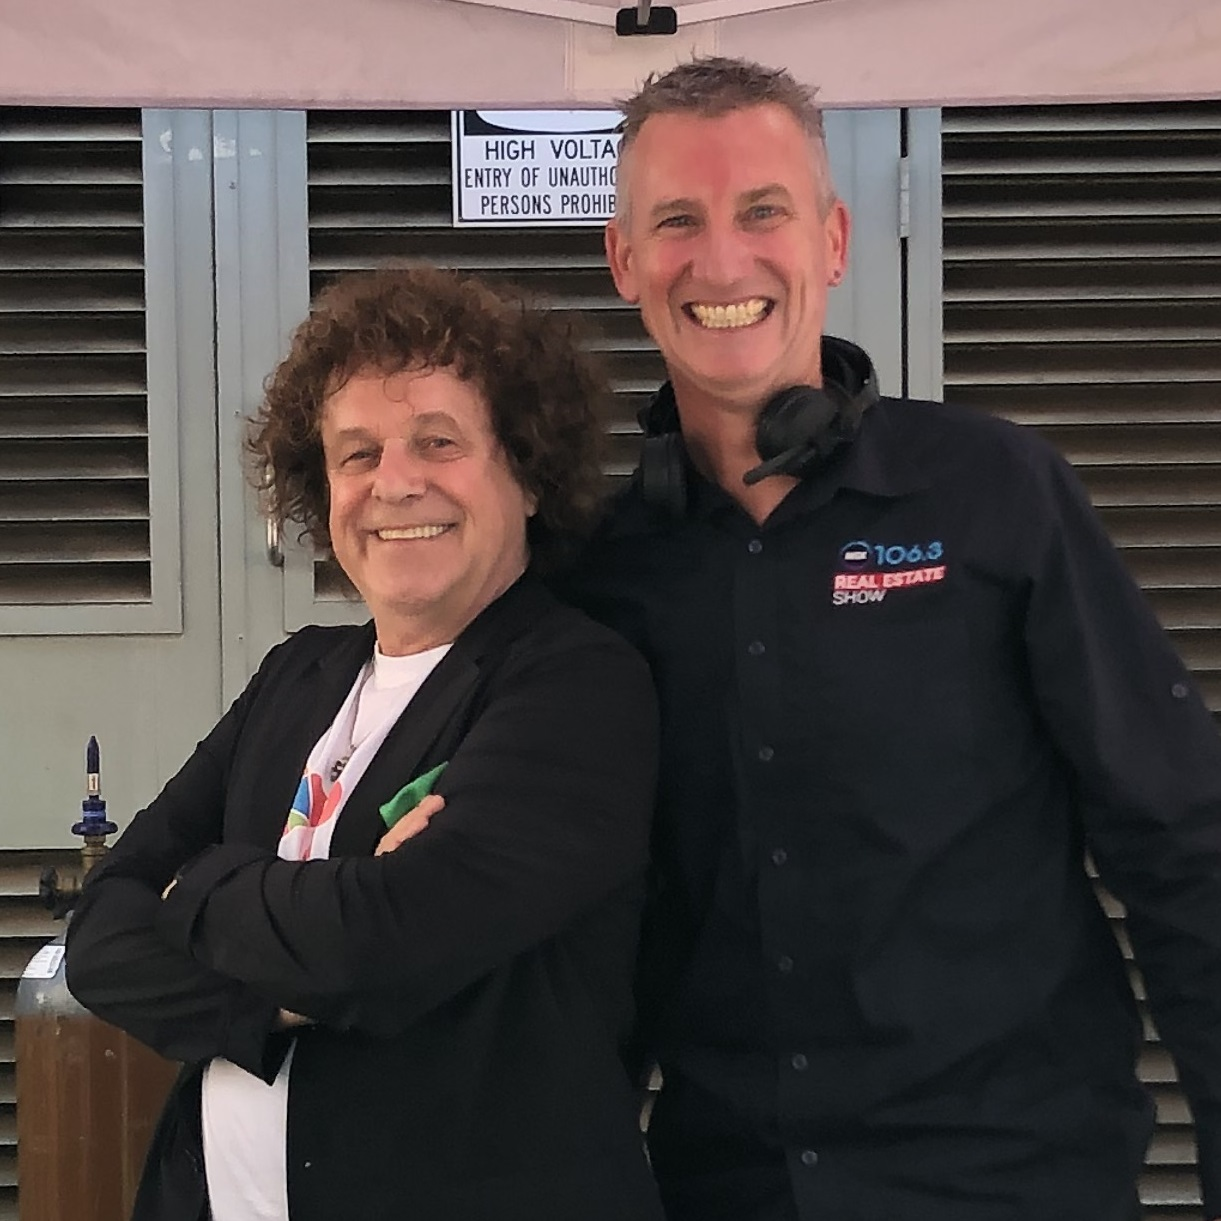 Mix106.3 Canberra Hospital Foundation OB - WOW, it's Leo Sayer